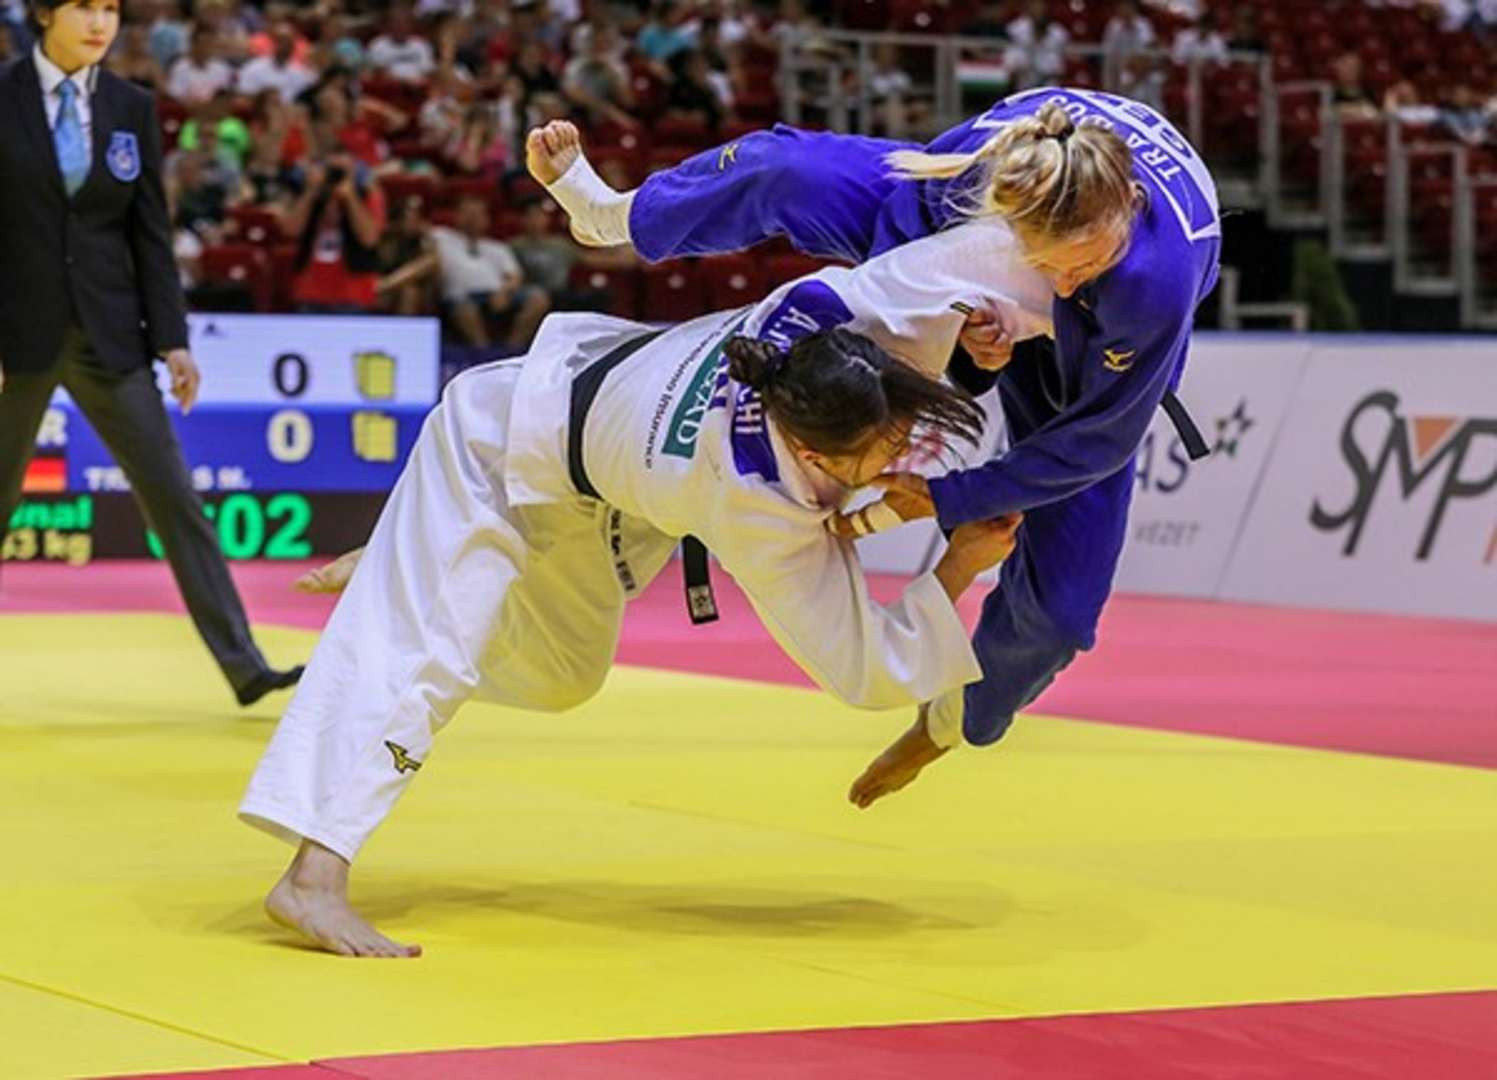 World Judo Tour confirmed to return this month with Budapest Grand Slam